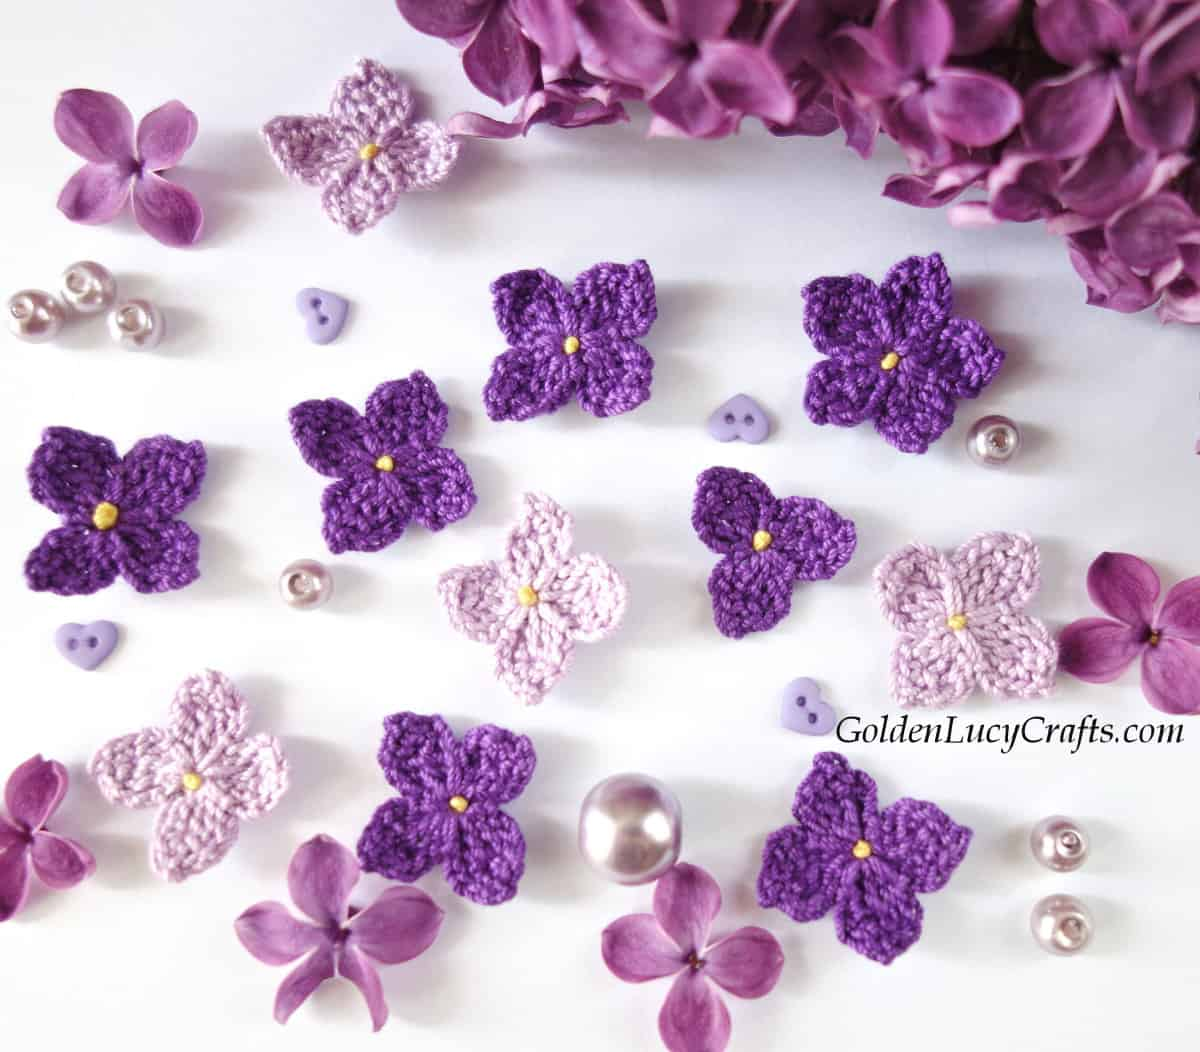 Crocheted and real lilac flowers, beads, mini heart buttons.